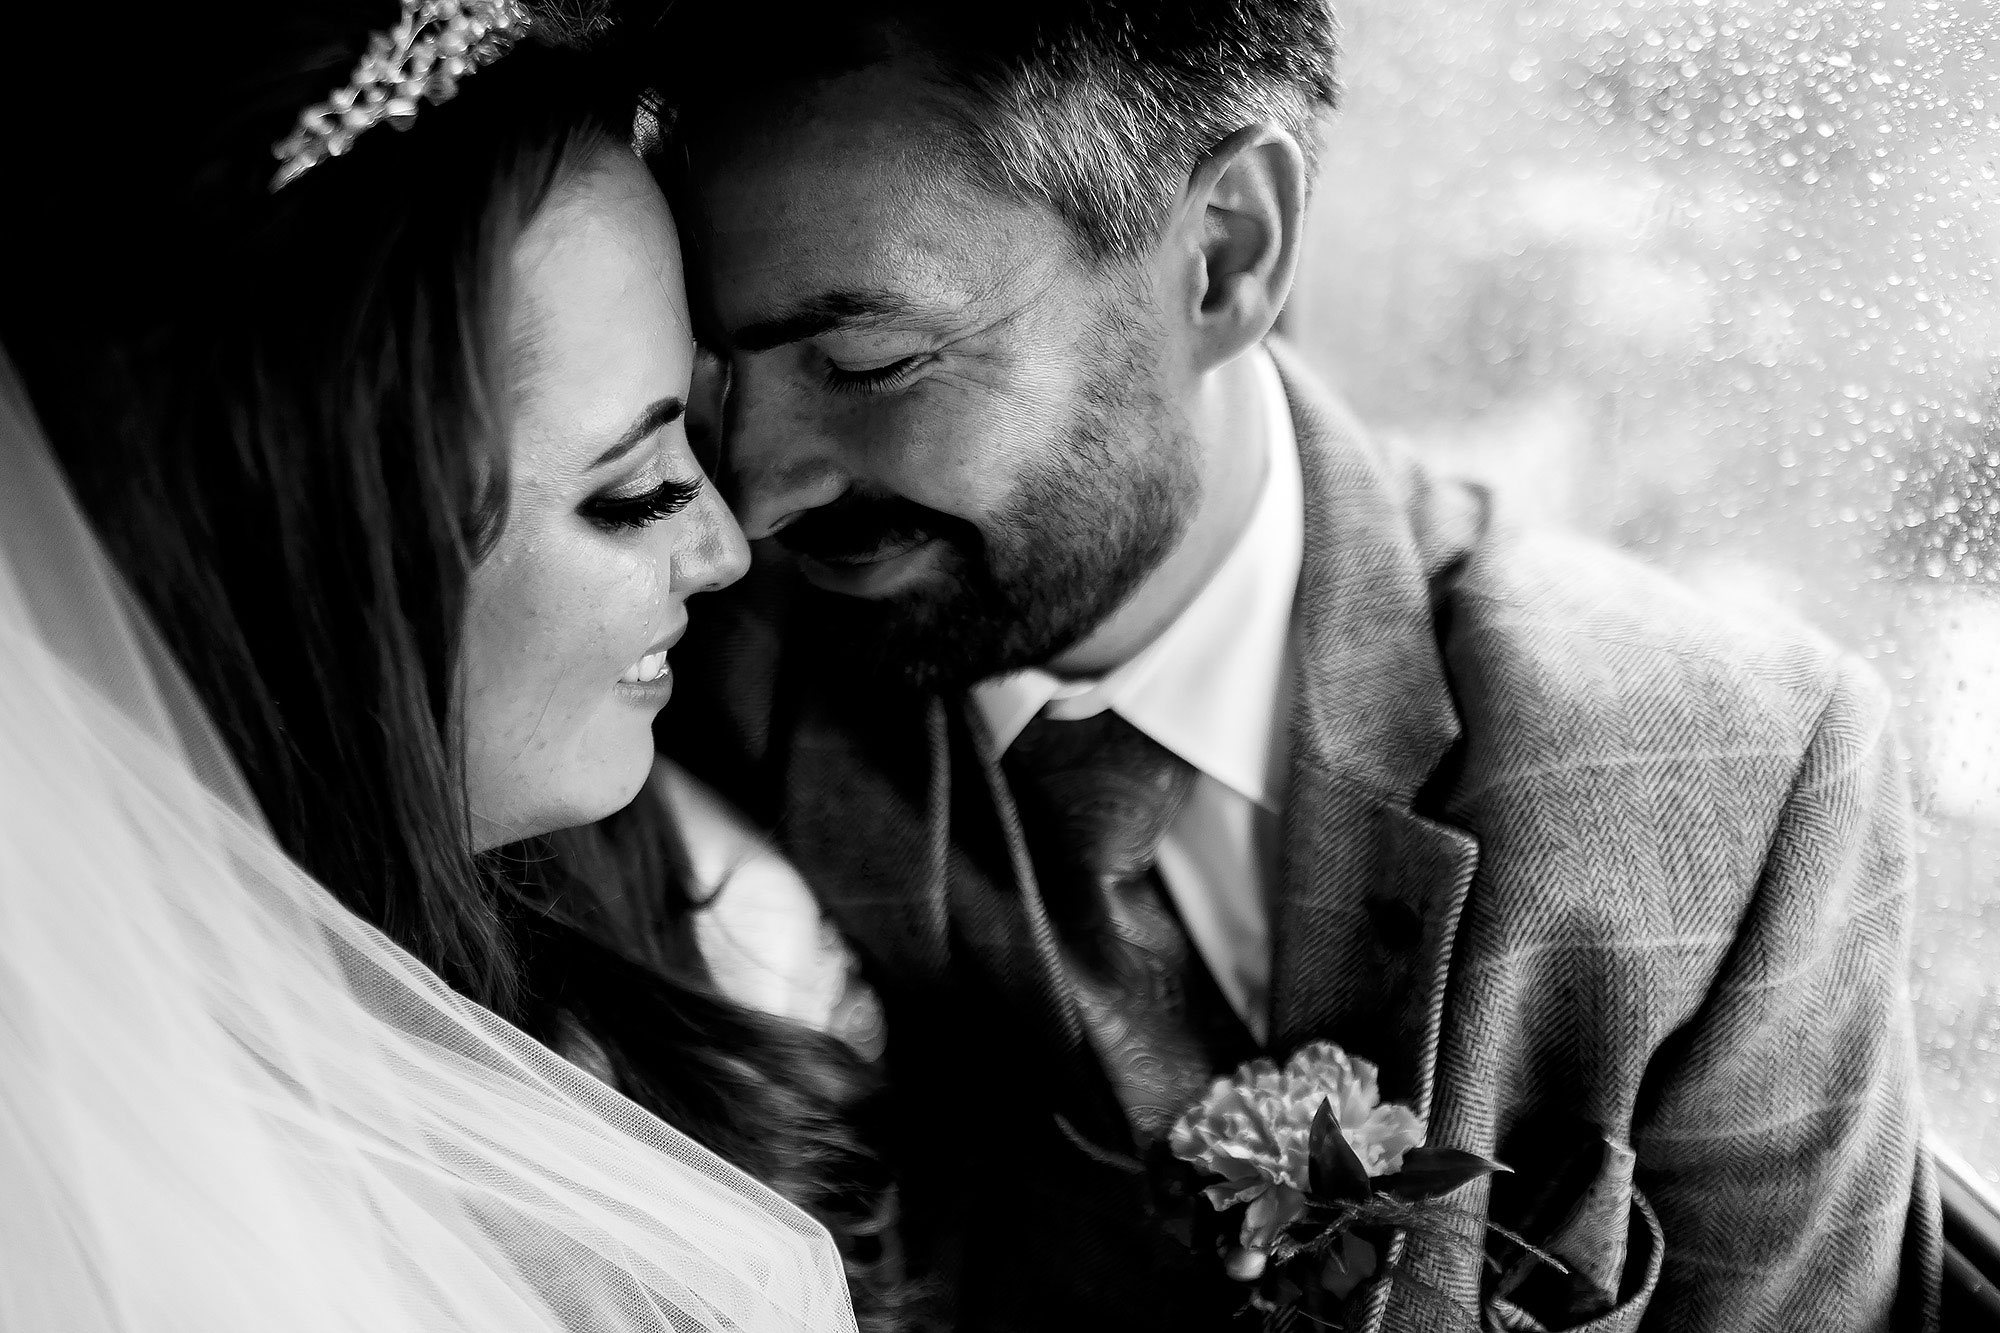 Bride and Groom enjoying a private moment on the wedding bus as rain falls on the window | Wellbeing Farm wedding photographs by Toni Darcy Photography